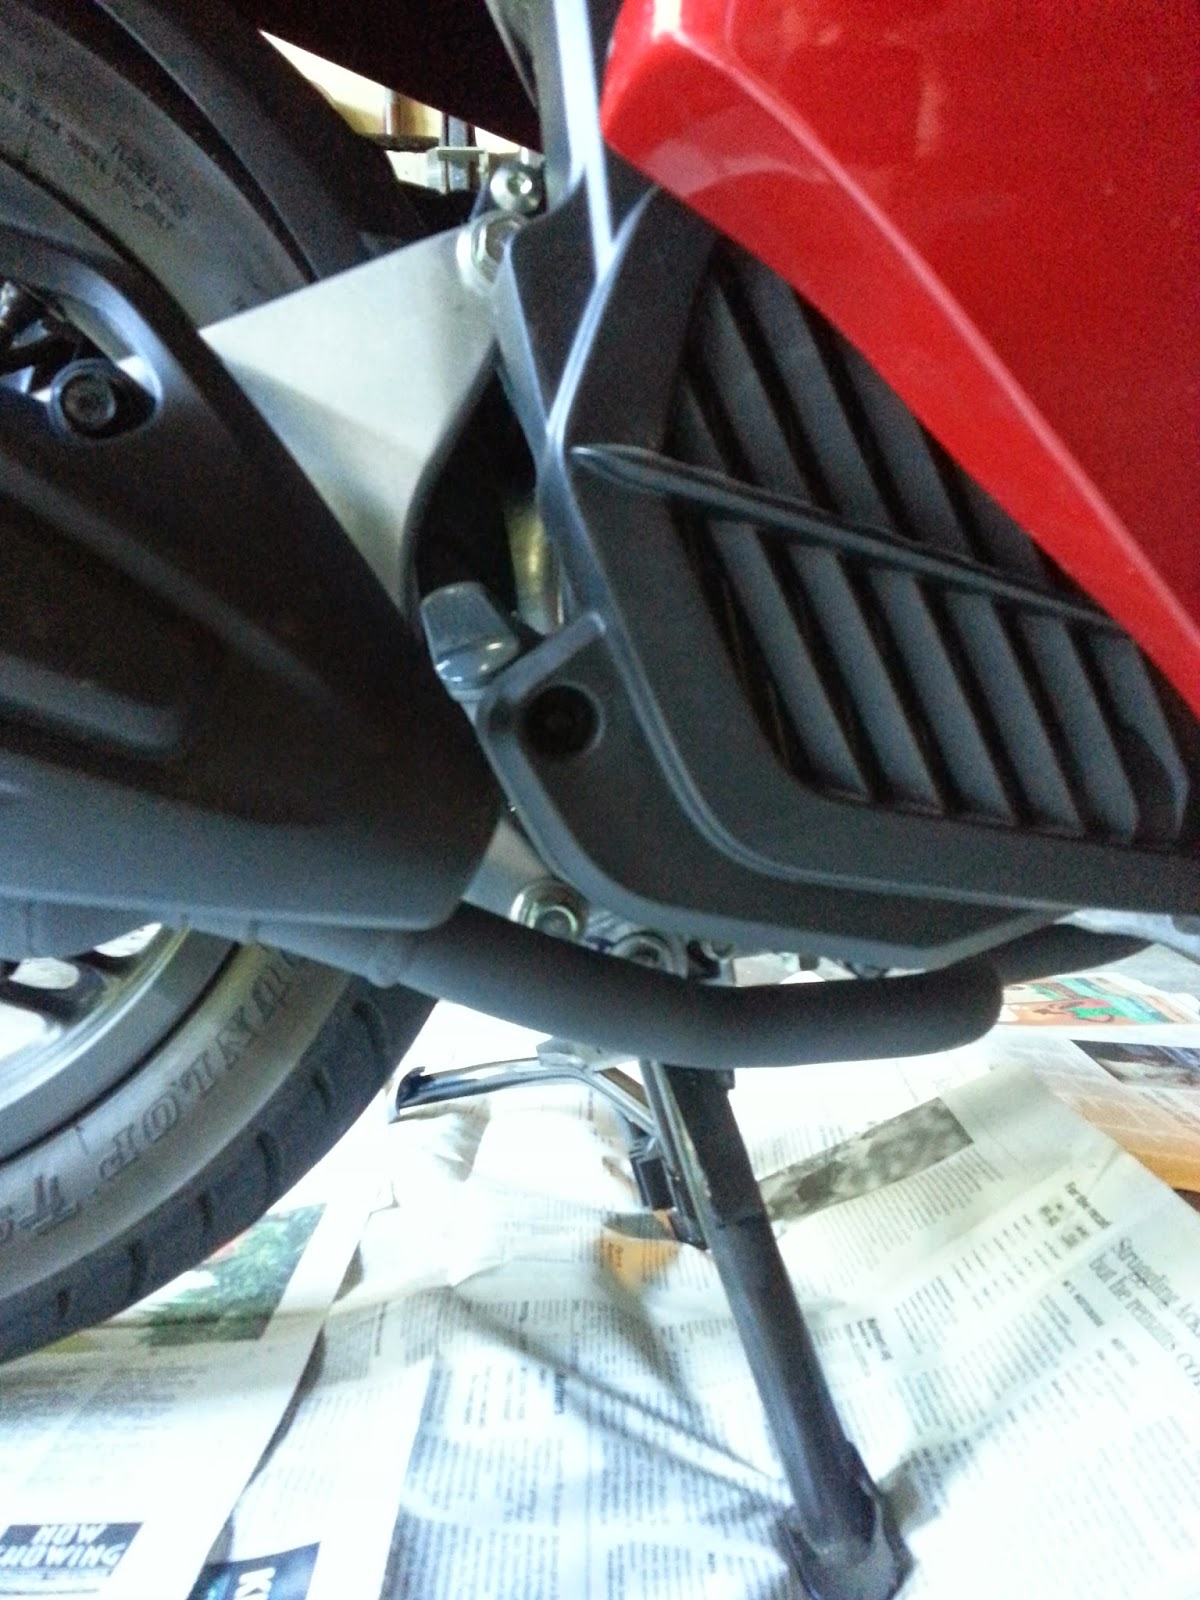 The oil drain plug and oil fill plug on are the side where the exhaust pipe is routed back and away from the engine on the right side of the pcx